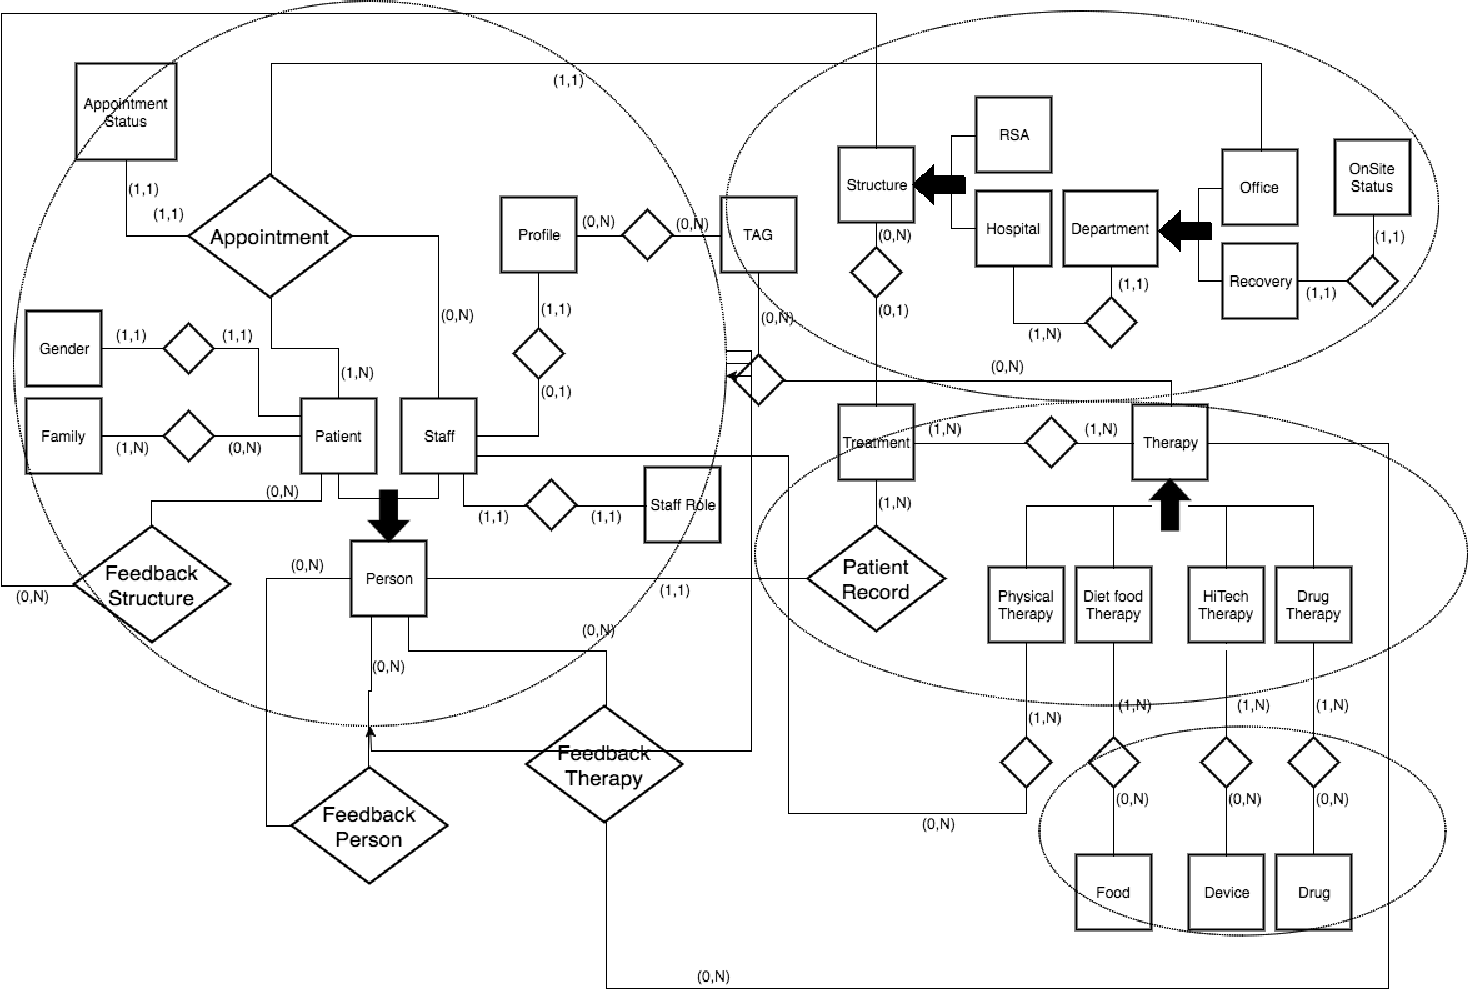 Figure 2 From Enriched E R Model To Design Hybrid Database For Big Data Solutions Semantic Scholar